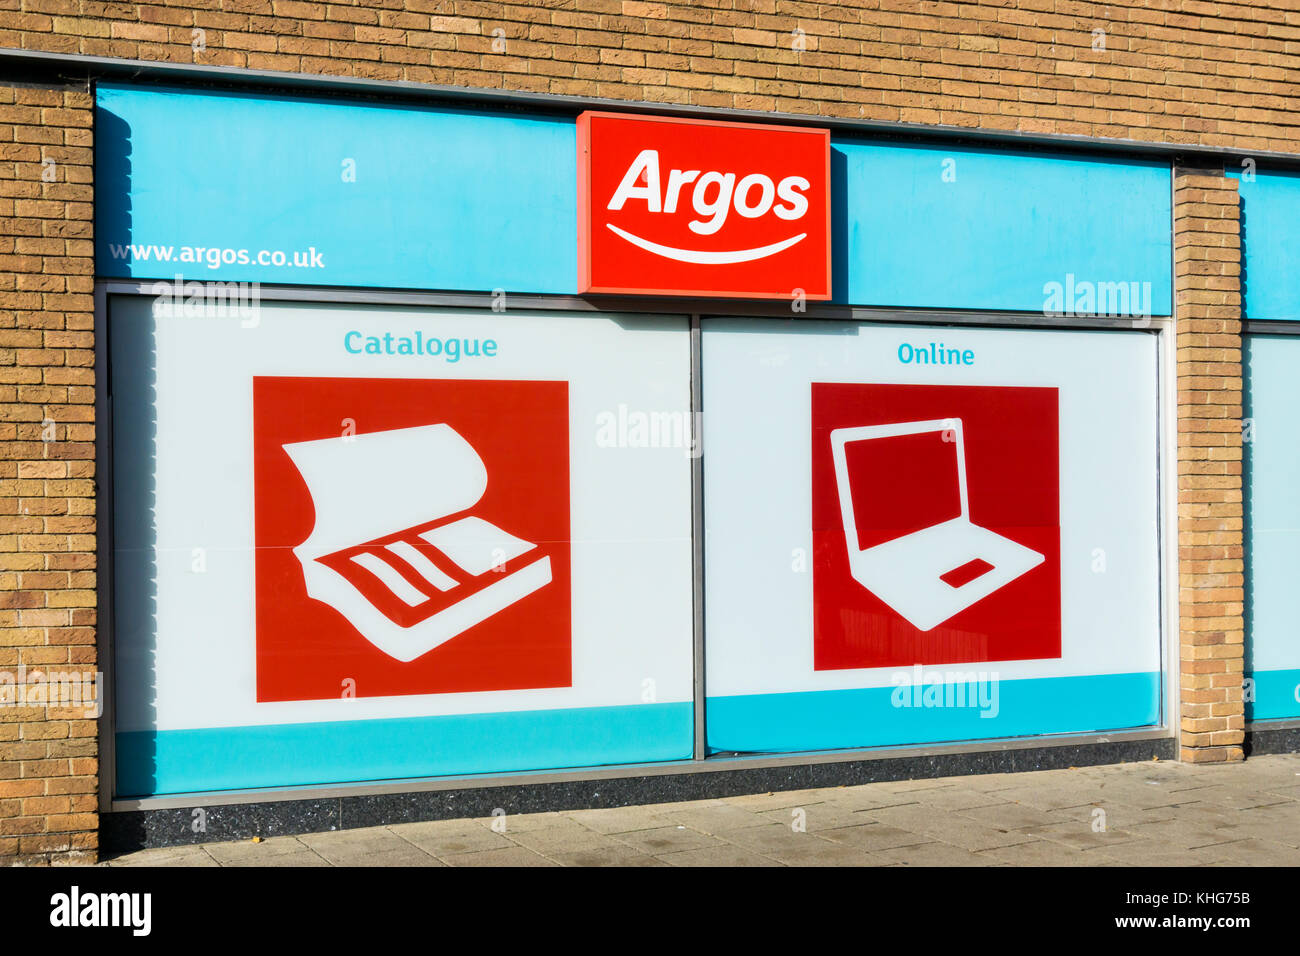 Options of catalogue or online shopping at an Argos shop